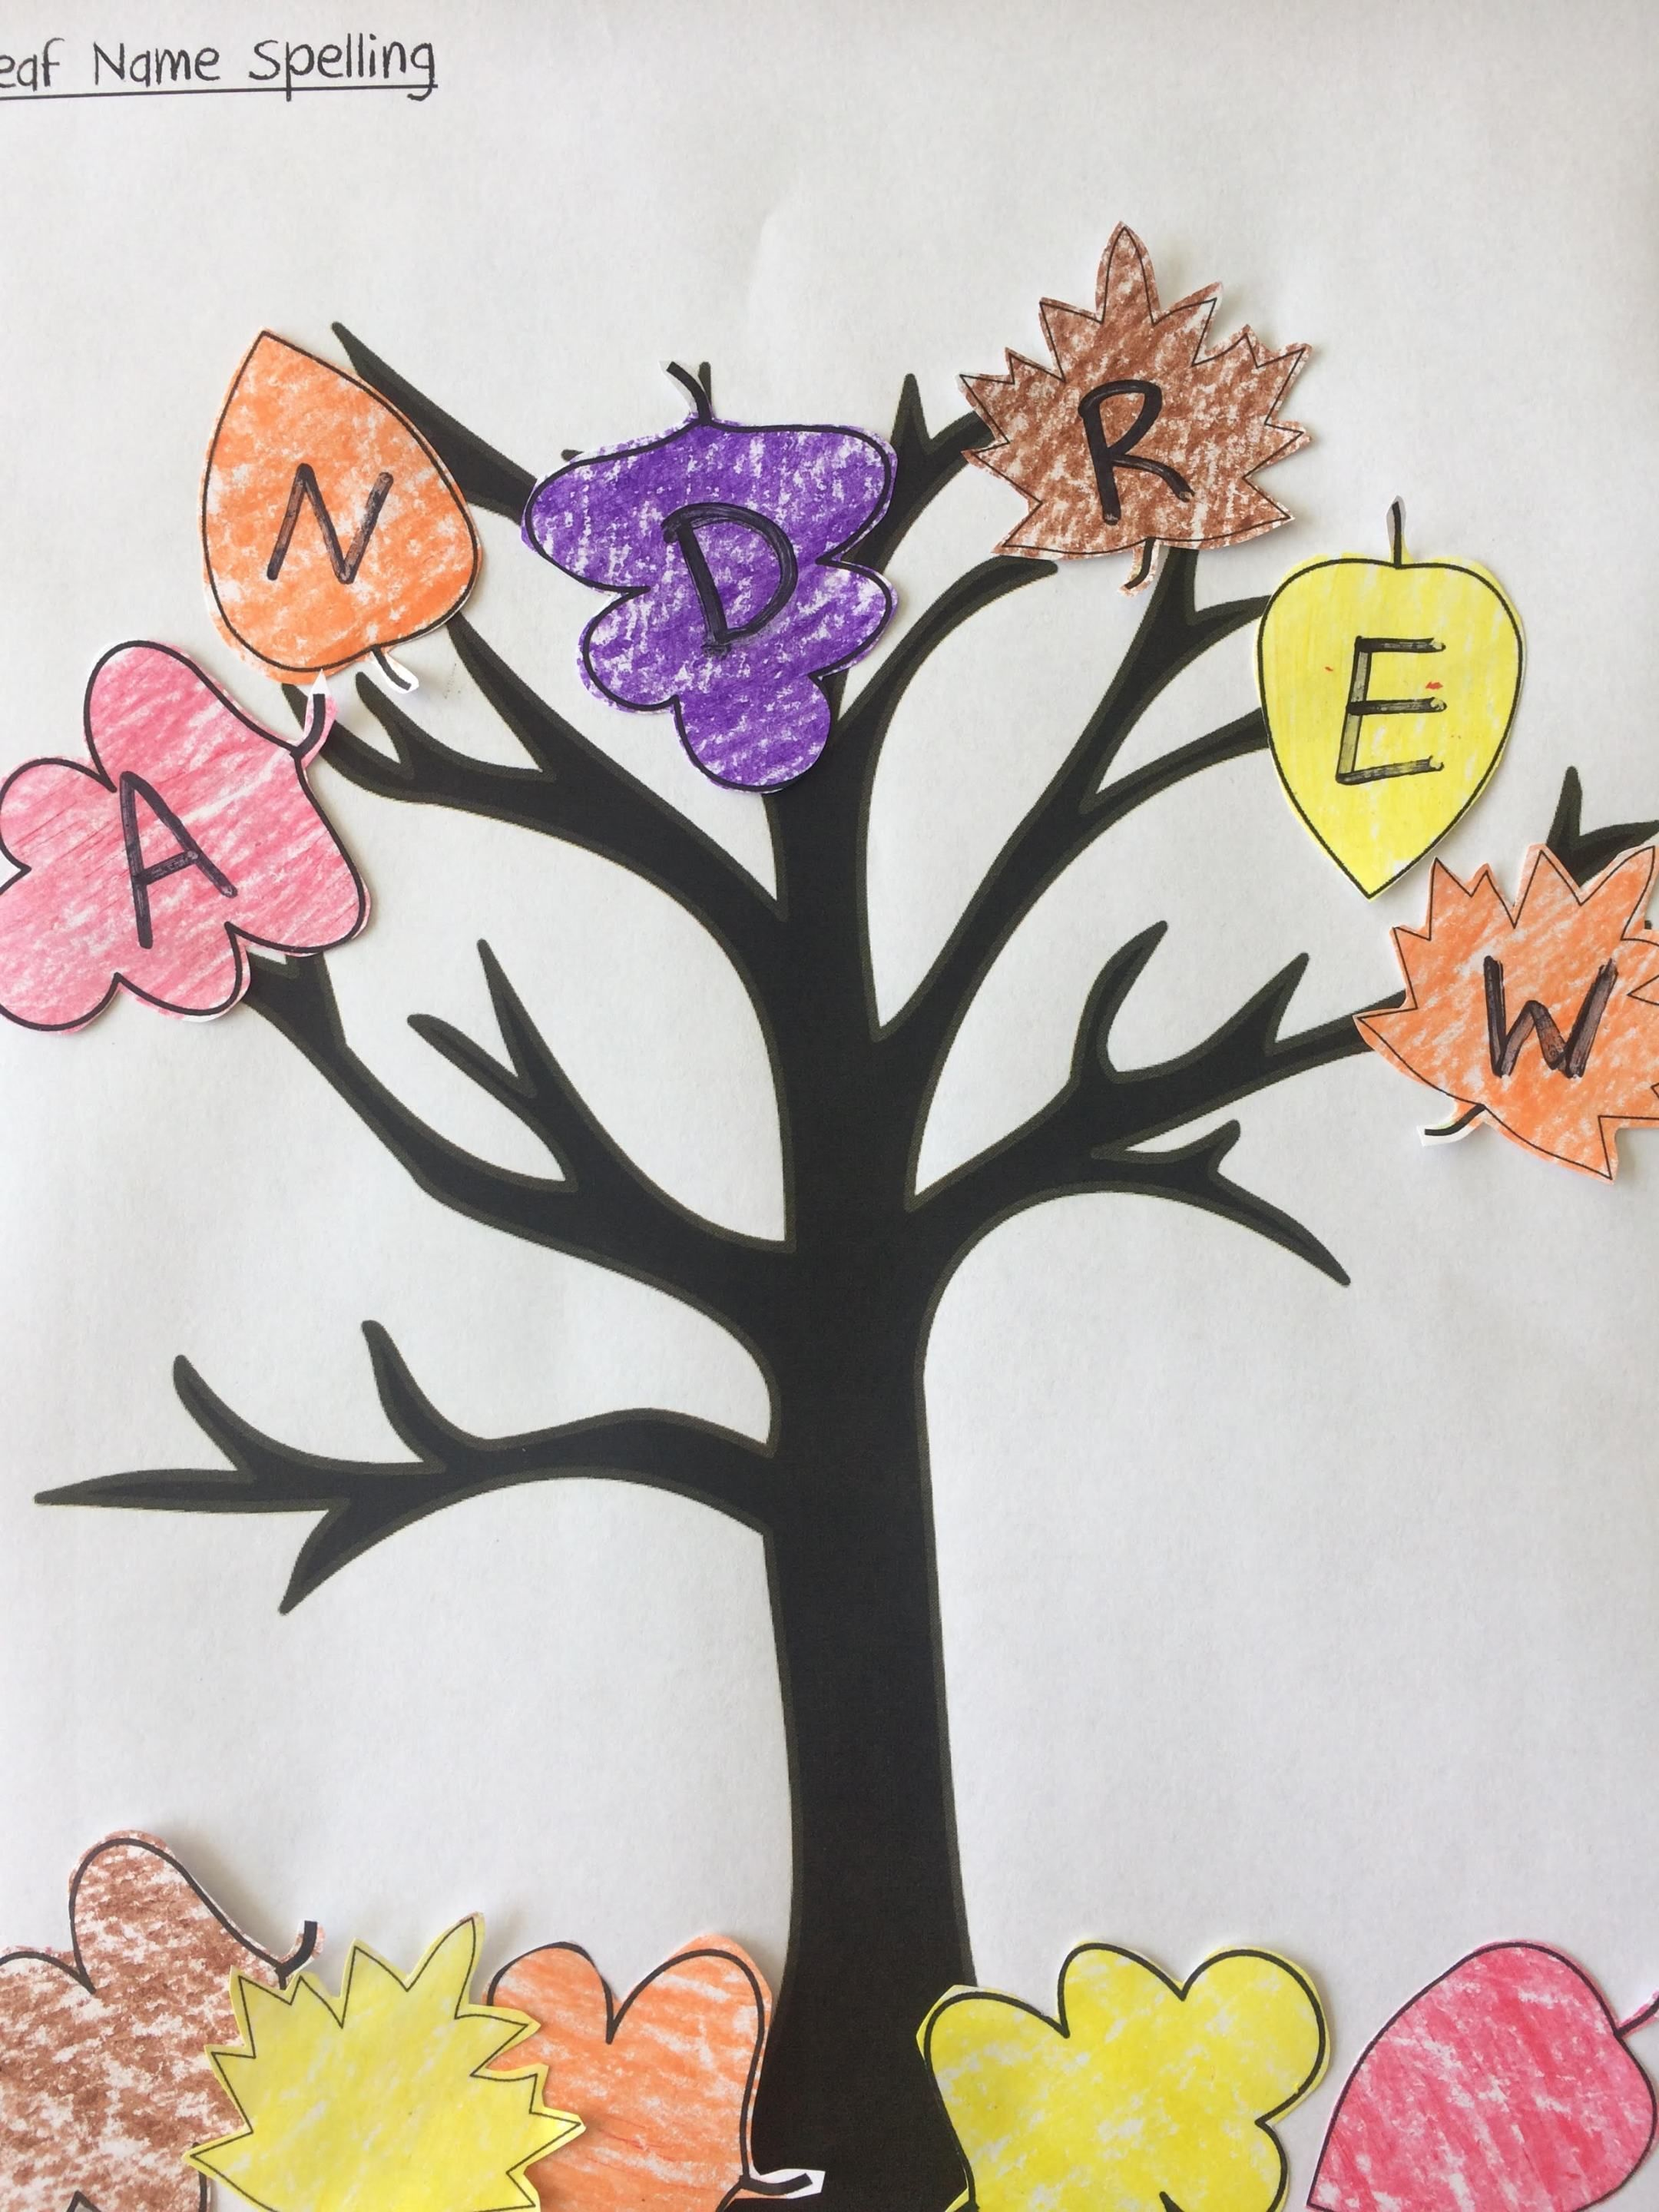 Spelling Names With Fall Leaves